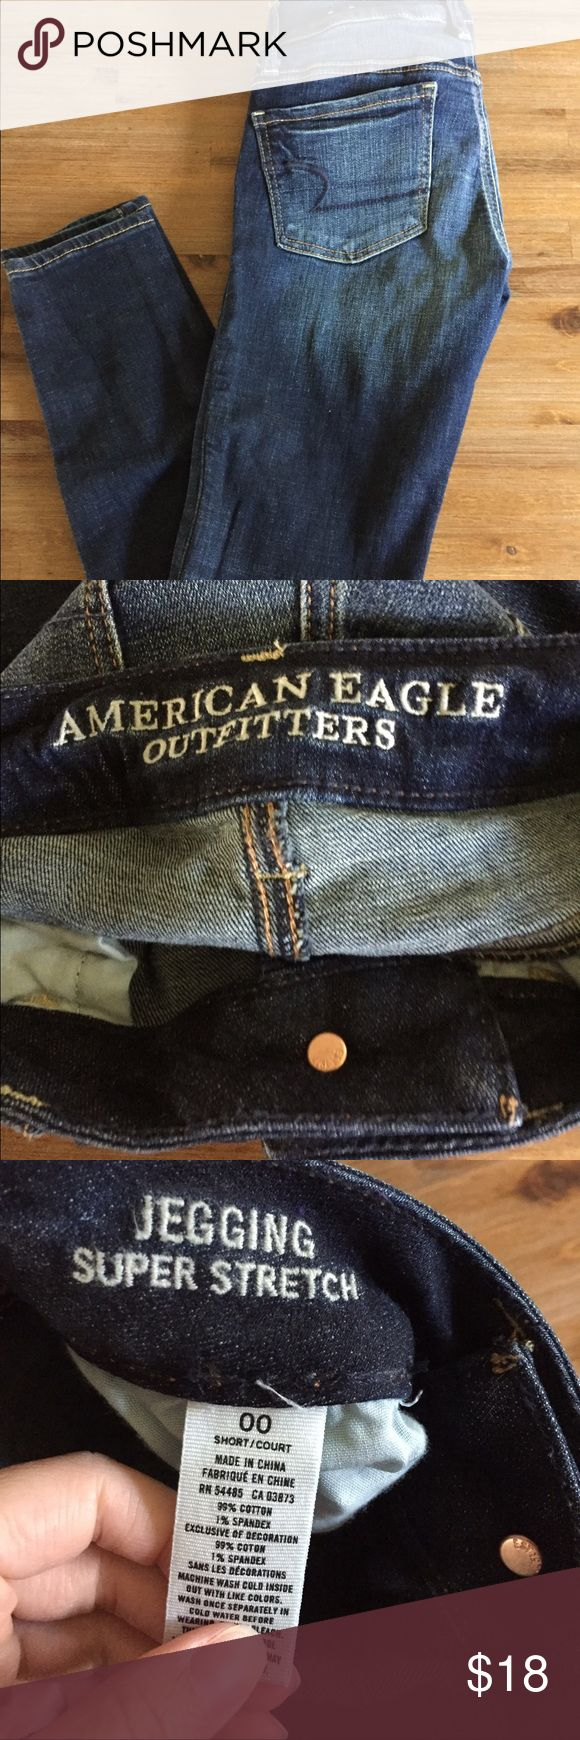 ⛄️SALE❄️ American Eagle Jegging American Eagle jeggings size 00 Short. Worn a few times in excellent condition. ‼️ NO TRADES ‼️ American Eagle Outfitters Pants